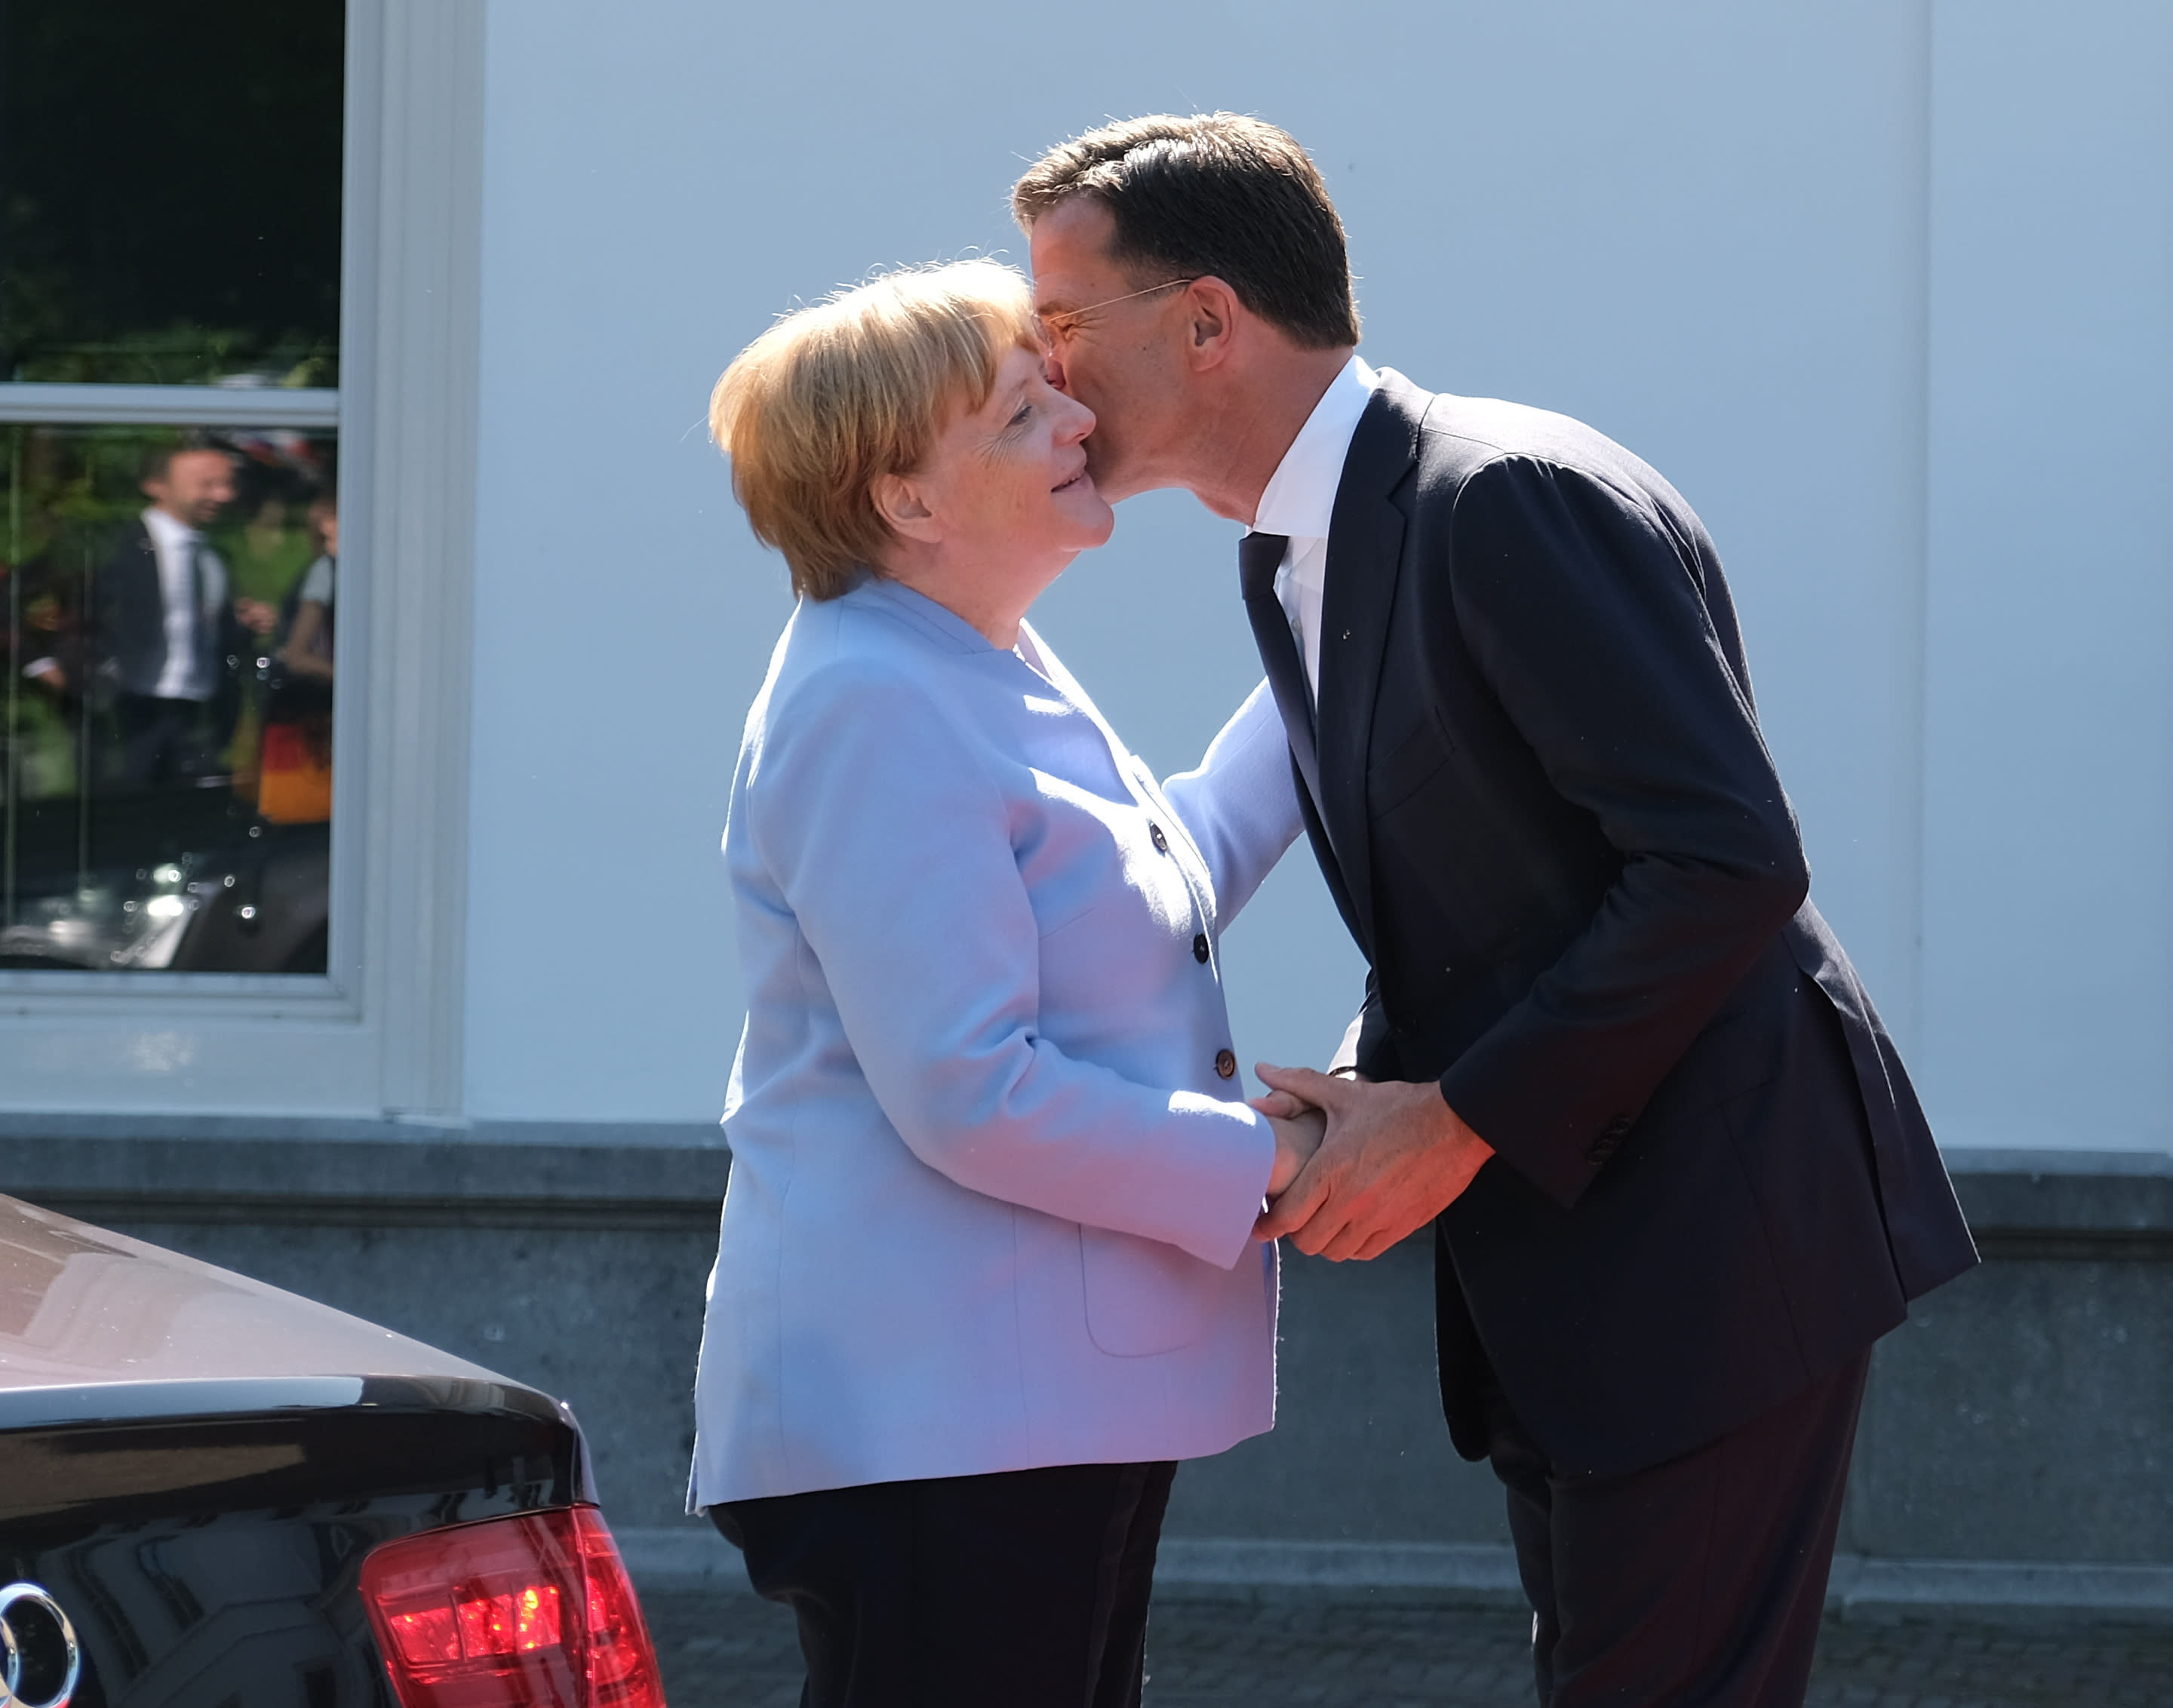 Dutch Prime Minister Mark Rutte, right, greets German Chancellor Angela Merkel in The Hague, Netherlands, Thursday Aug. 22, 2019. Merkel and key Cabinet ministers are meeting their Dutch counterparts Thursday to discuss ways of tackling climate change together, as Germany is set to miss its emissions goals for 2020 by a wide margin.(AP Photo/Mike Corder)